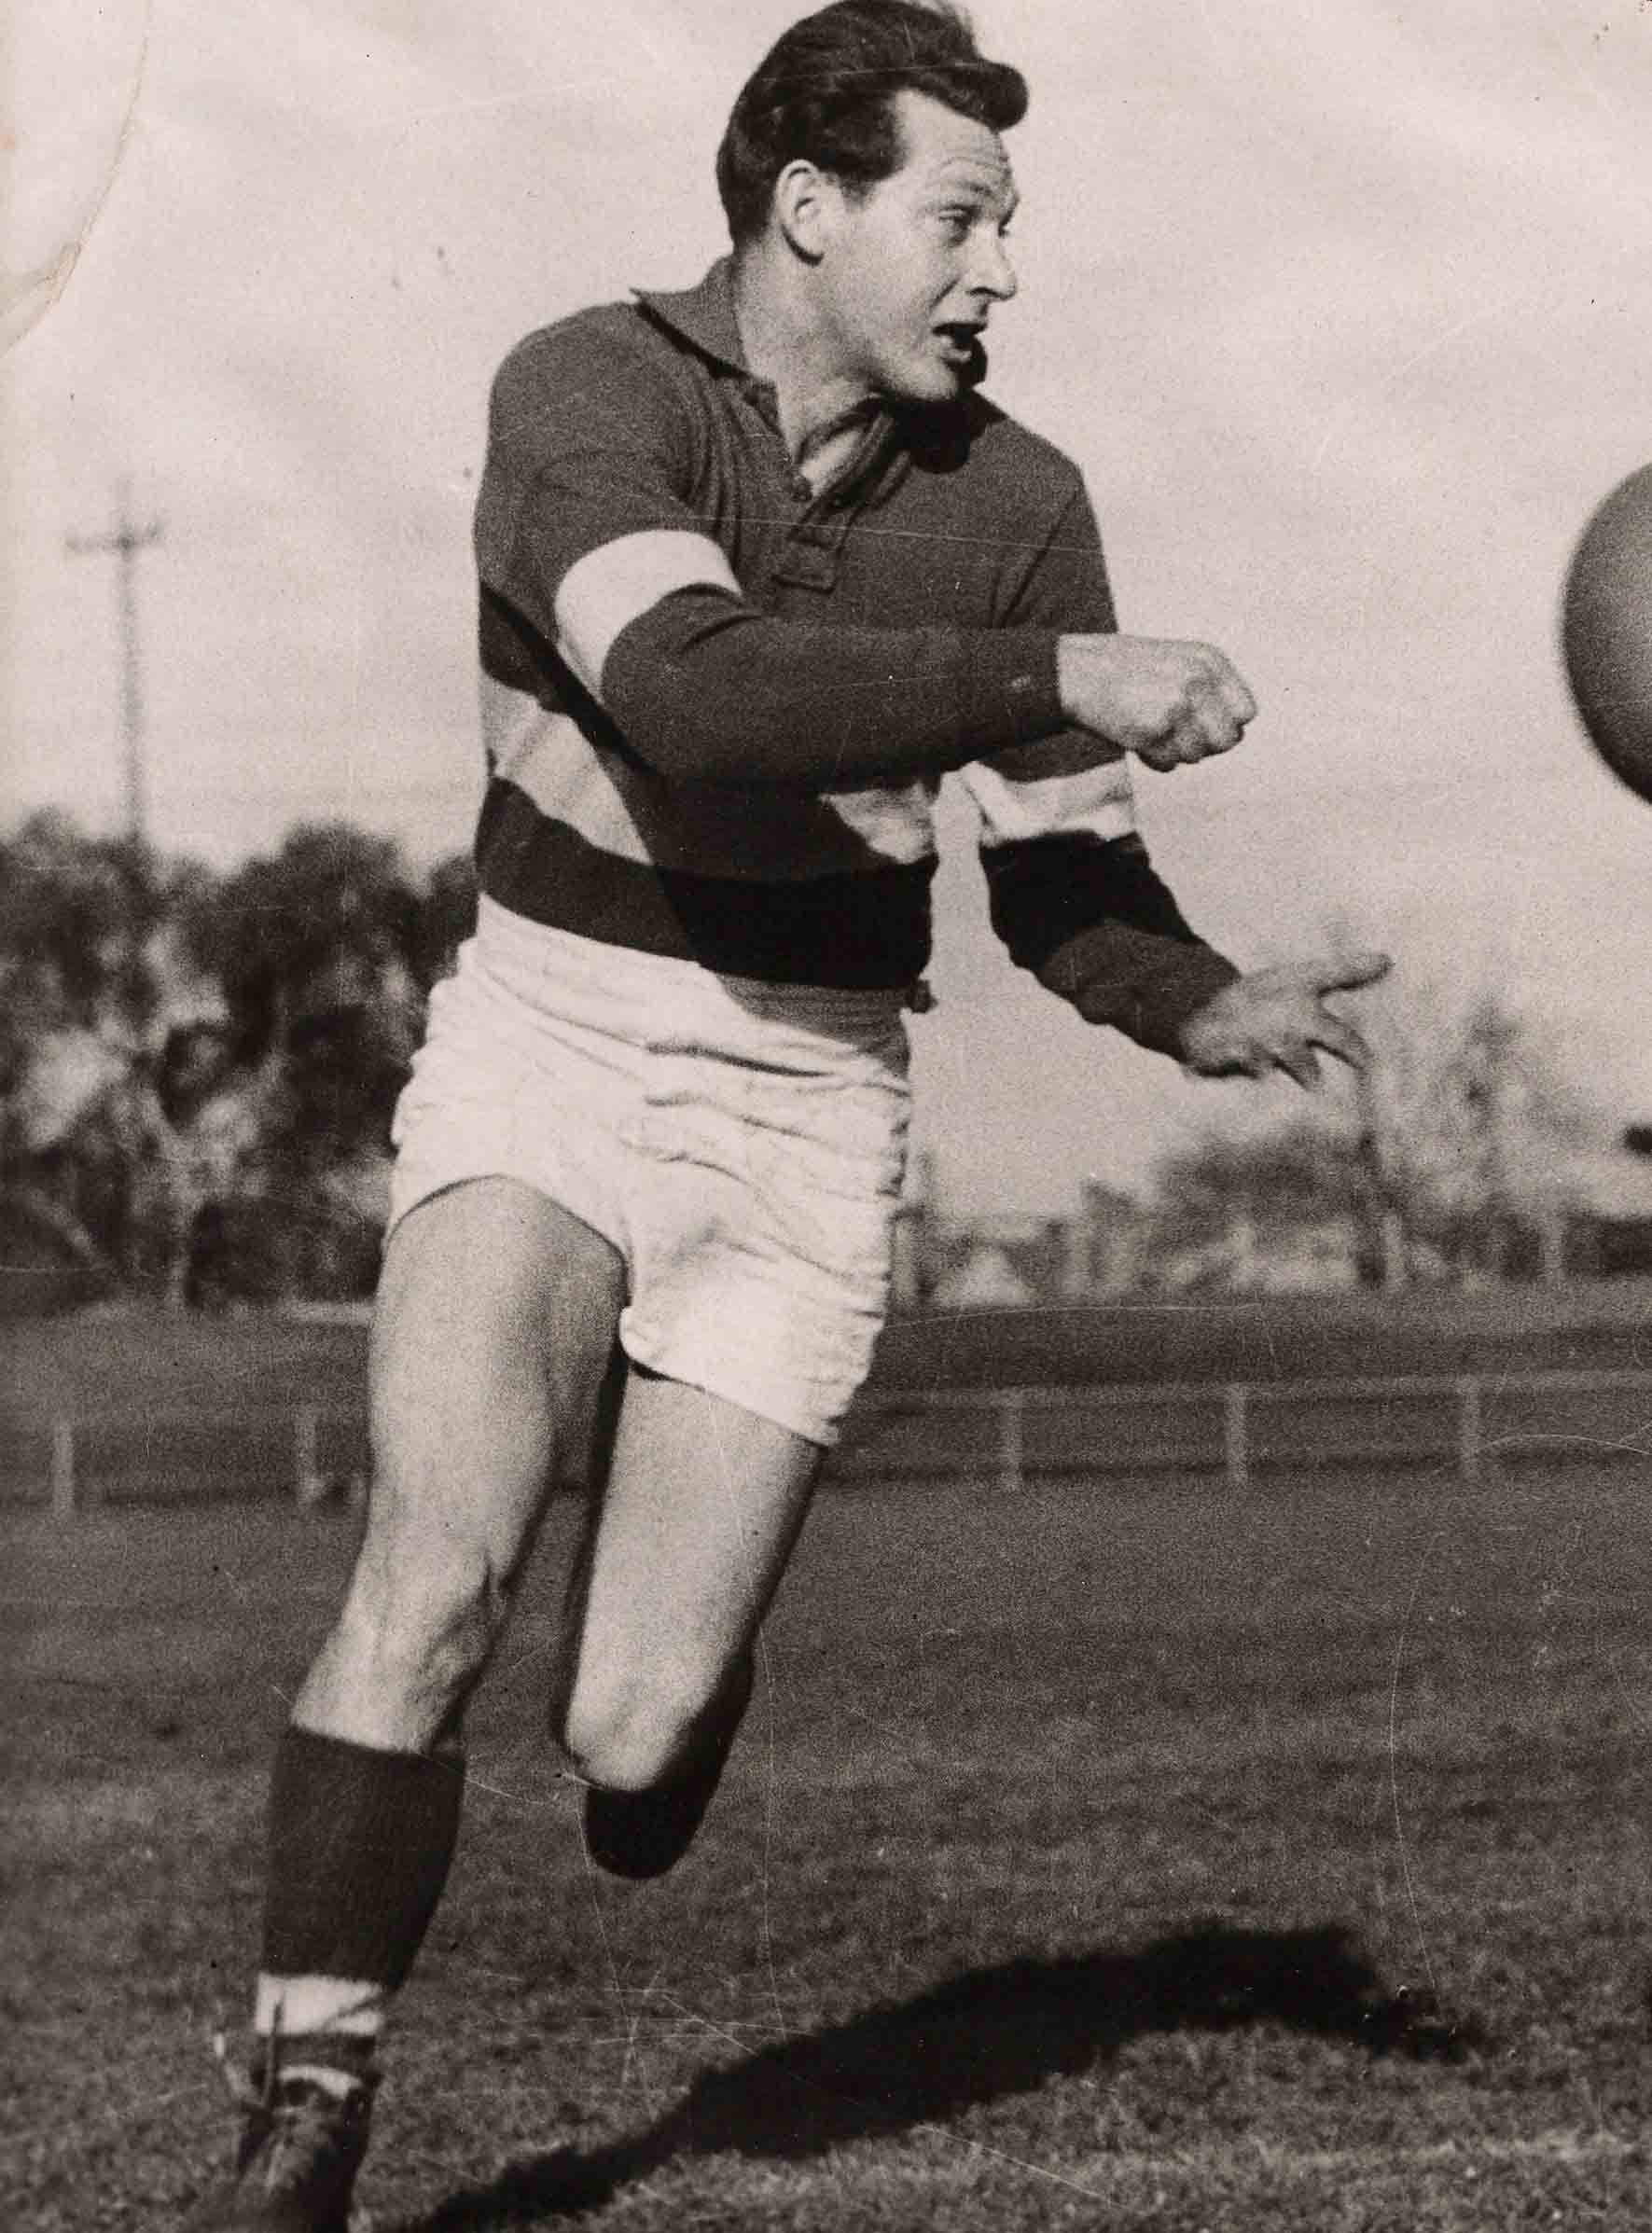 Don Ross has become the latest member to be inducted into the Footscray/Western Bulldogs Hall of Fame. (Photo: westernbulldogs.com.au)